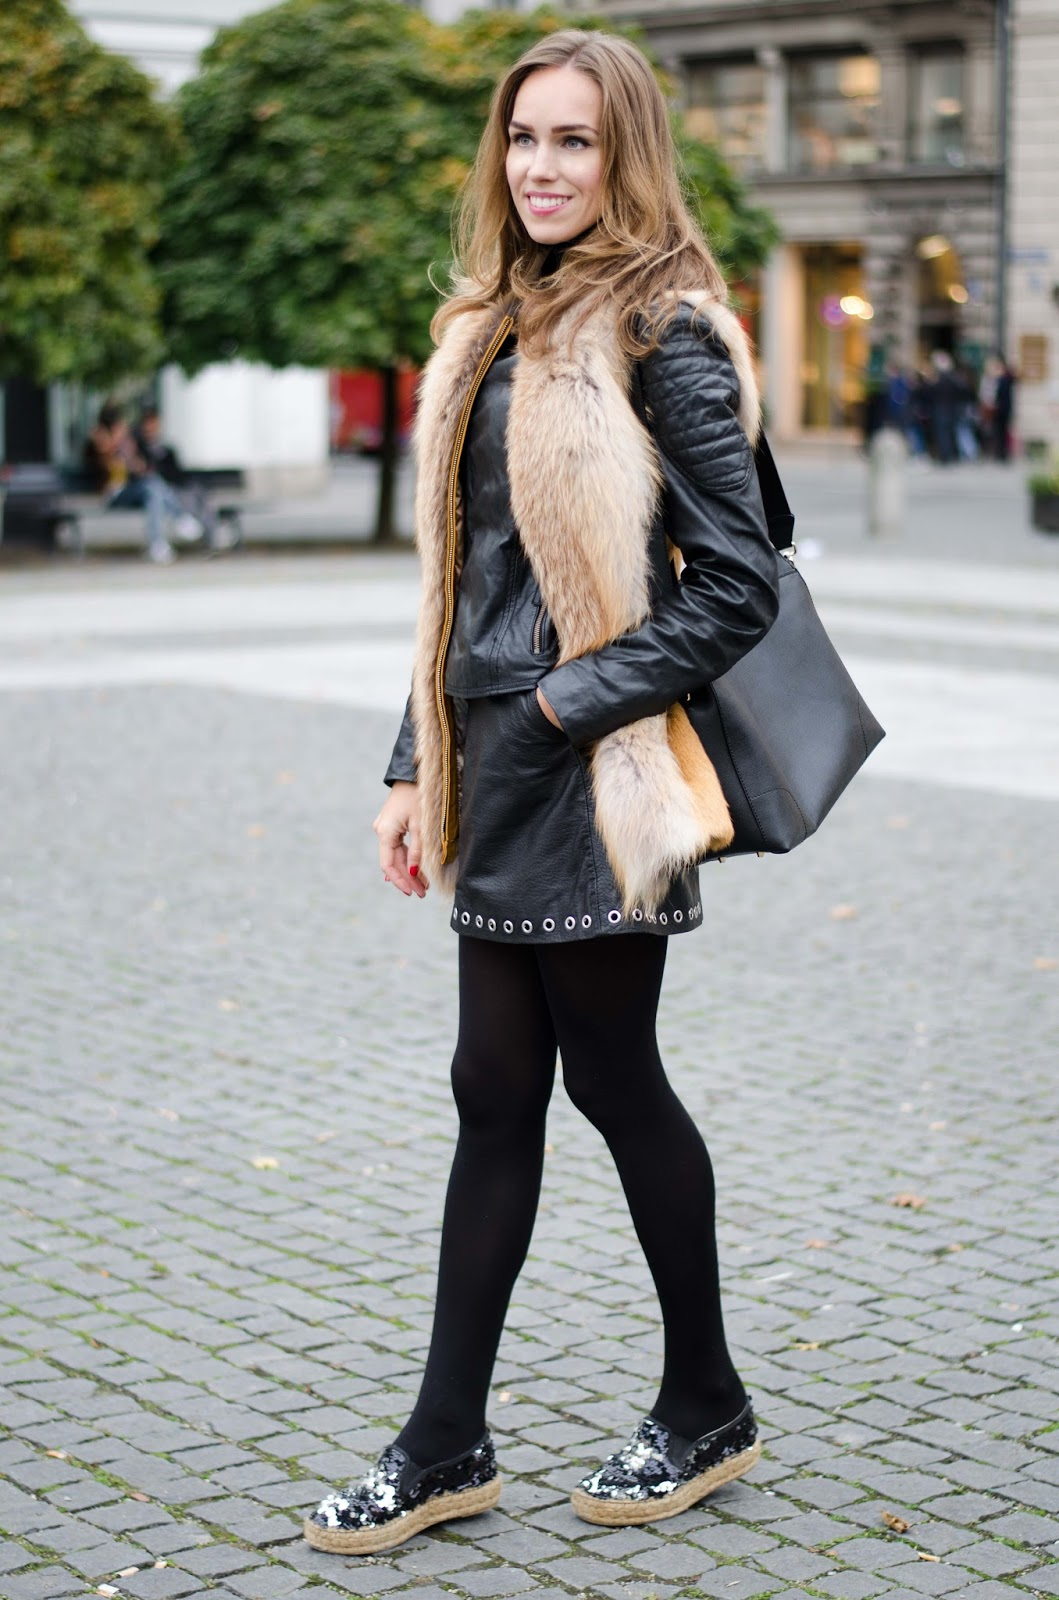 kristjaana mere munich fall outfit fur vest black leather jacket skirt